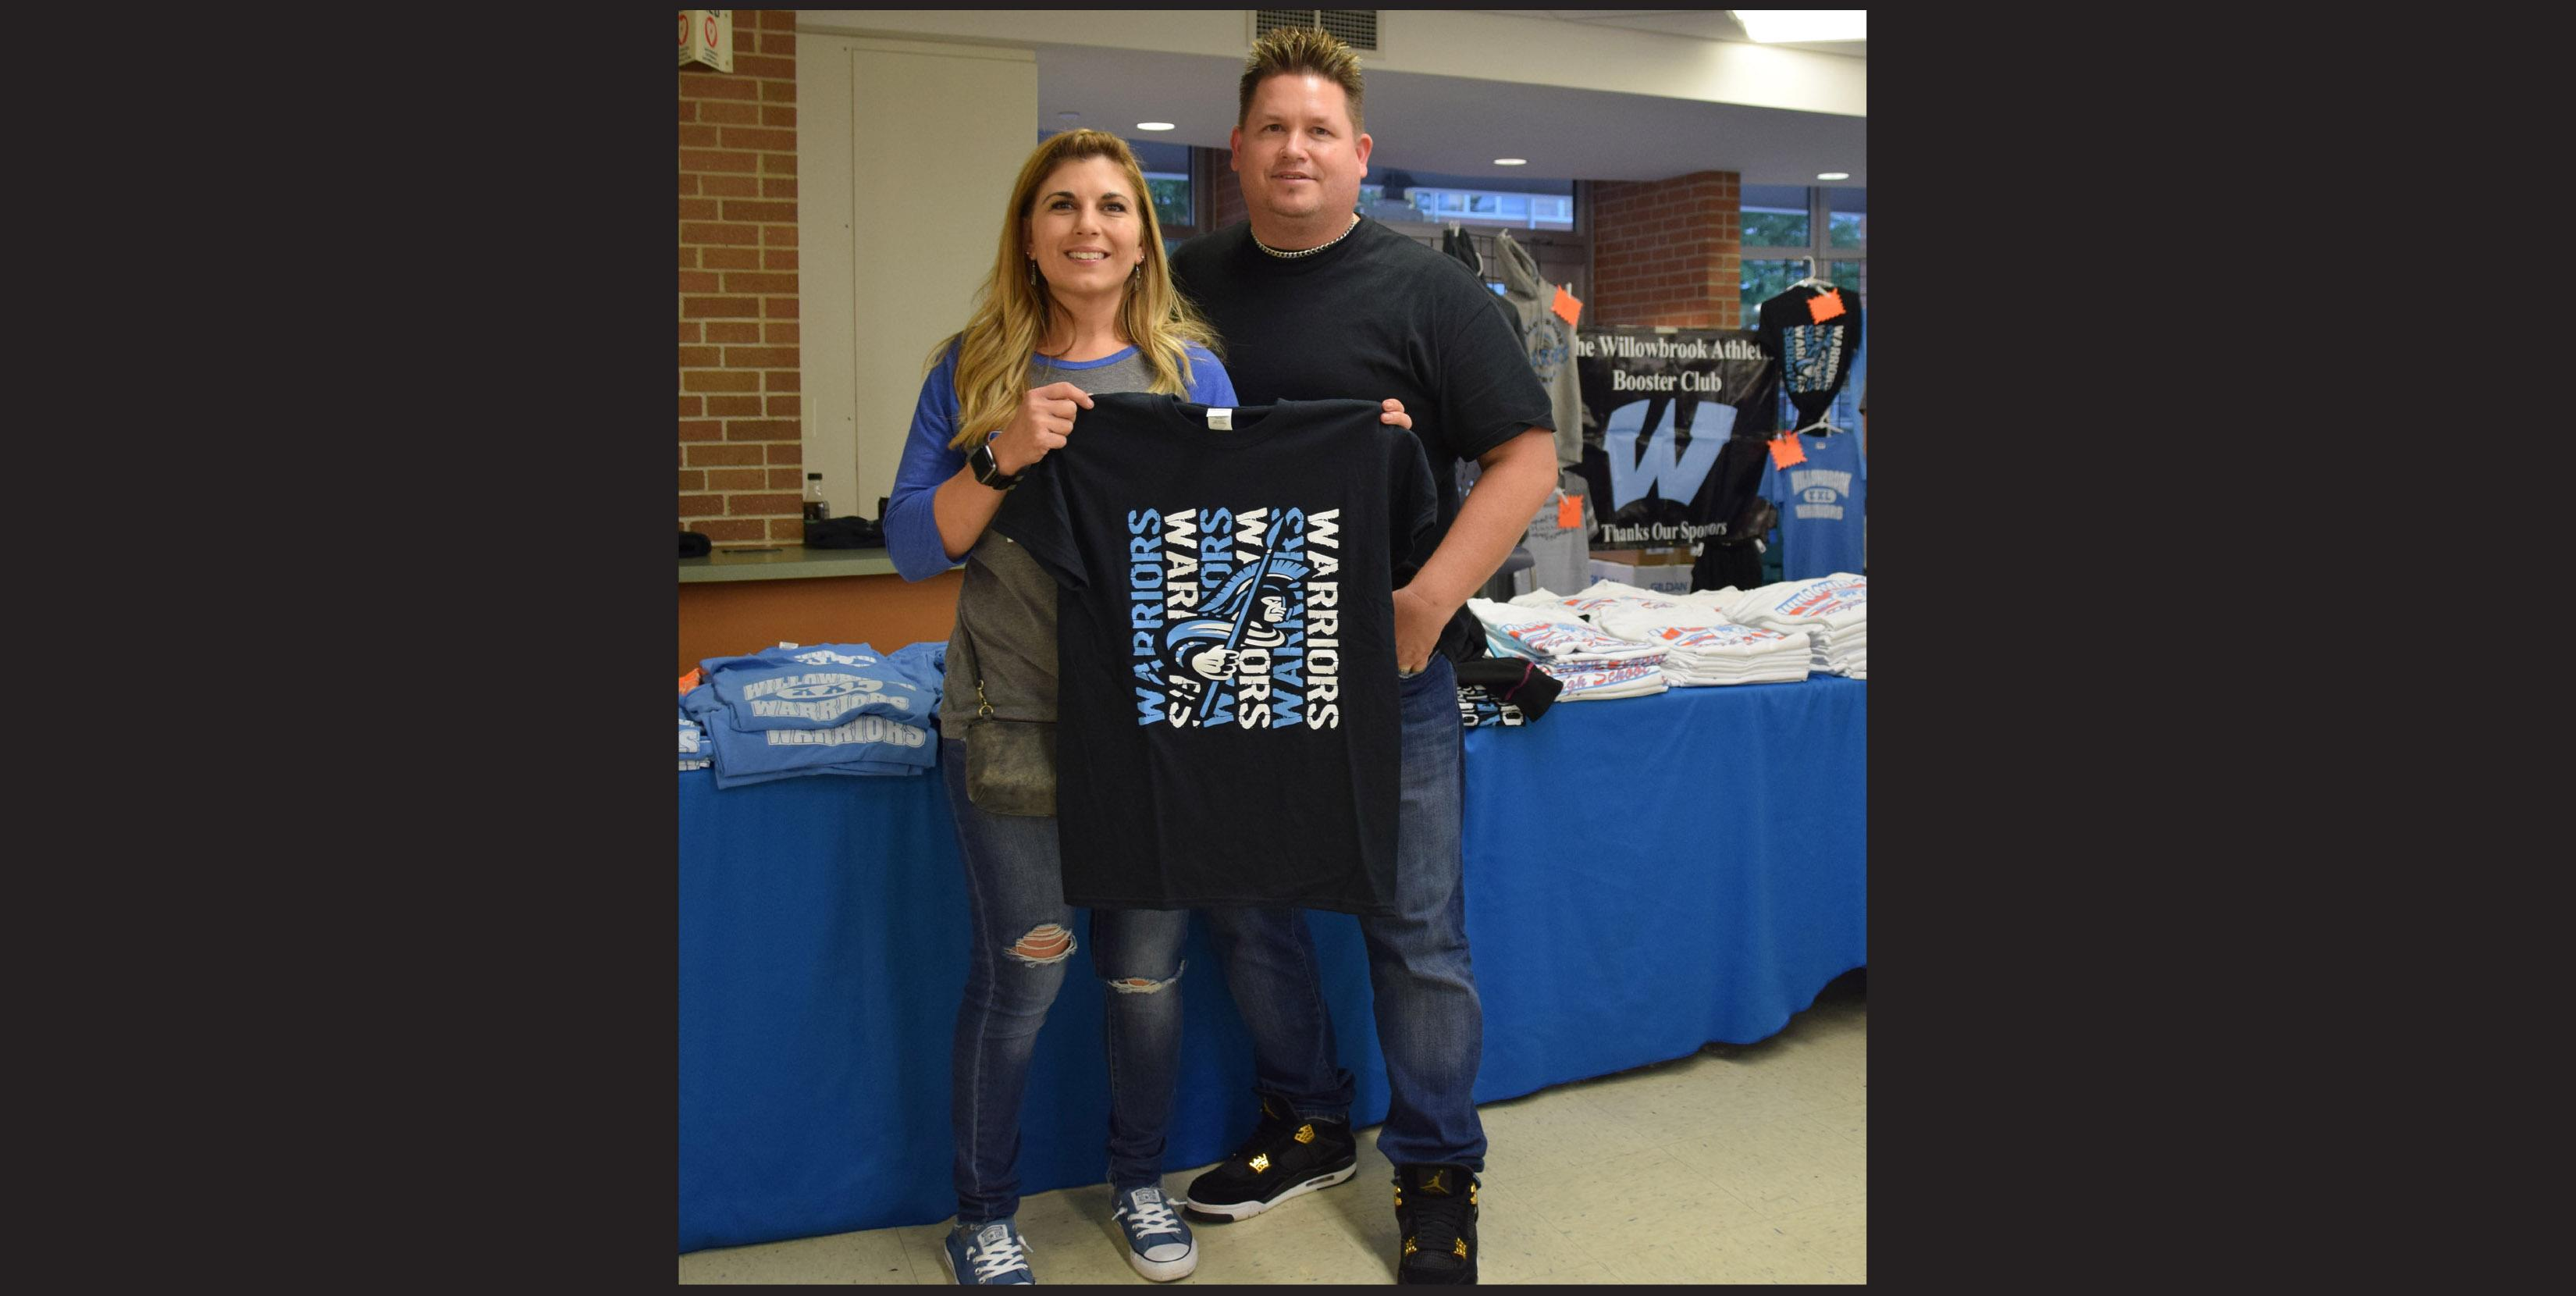 Willowbrook hosts annual Open House